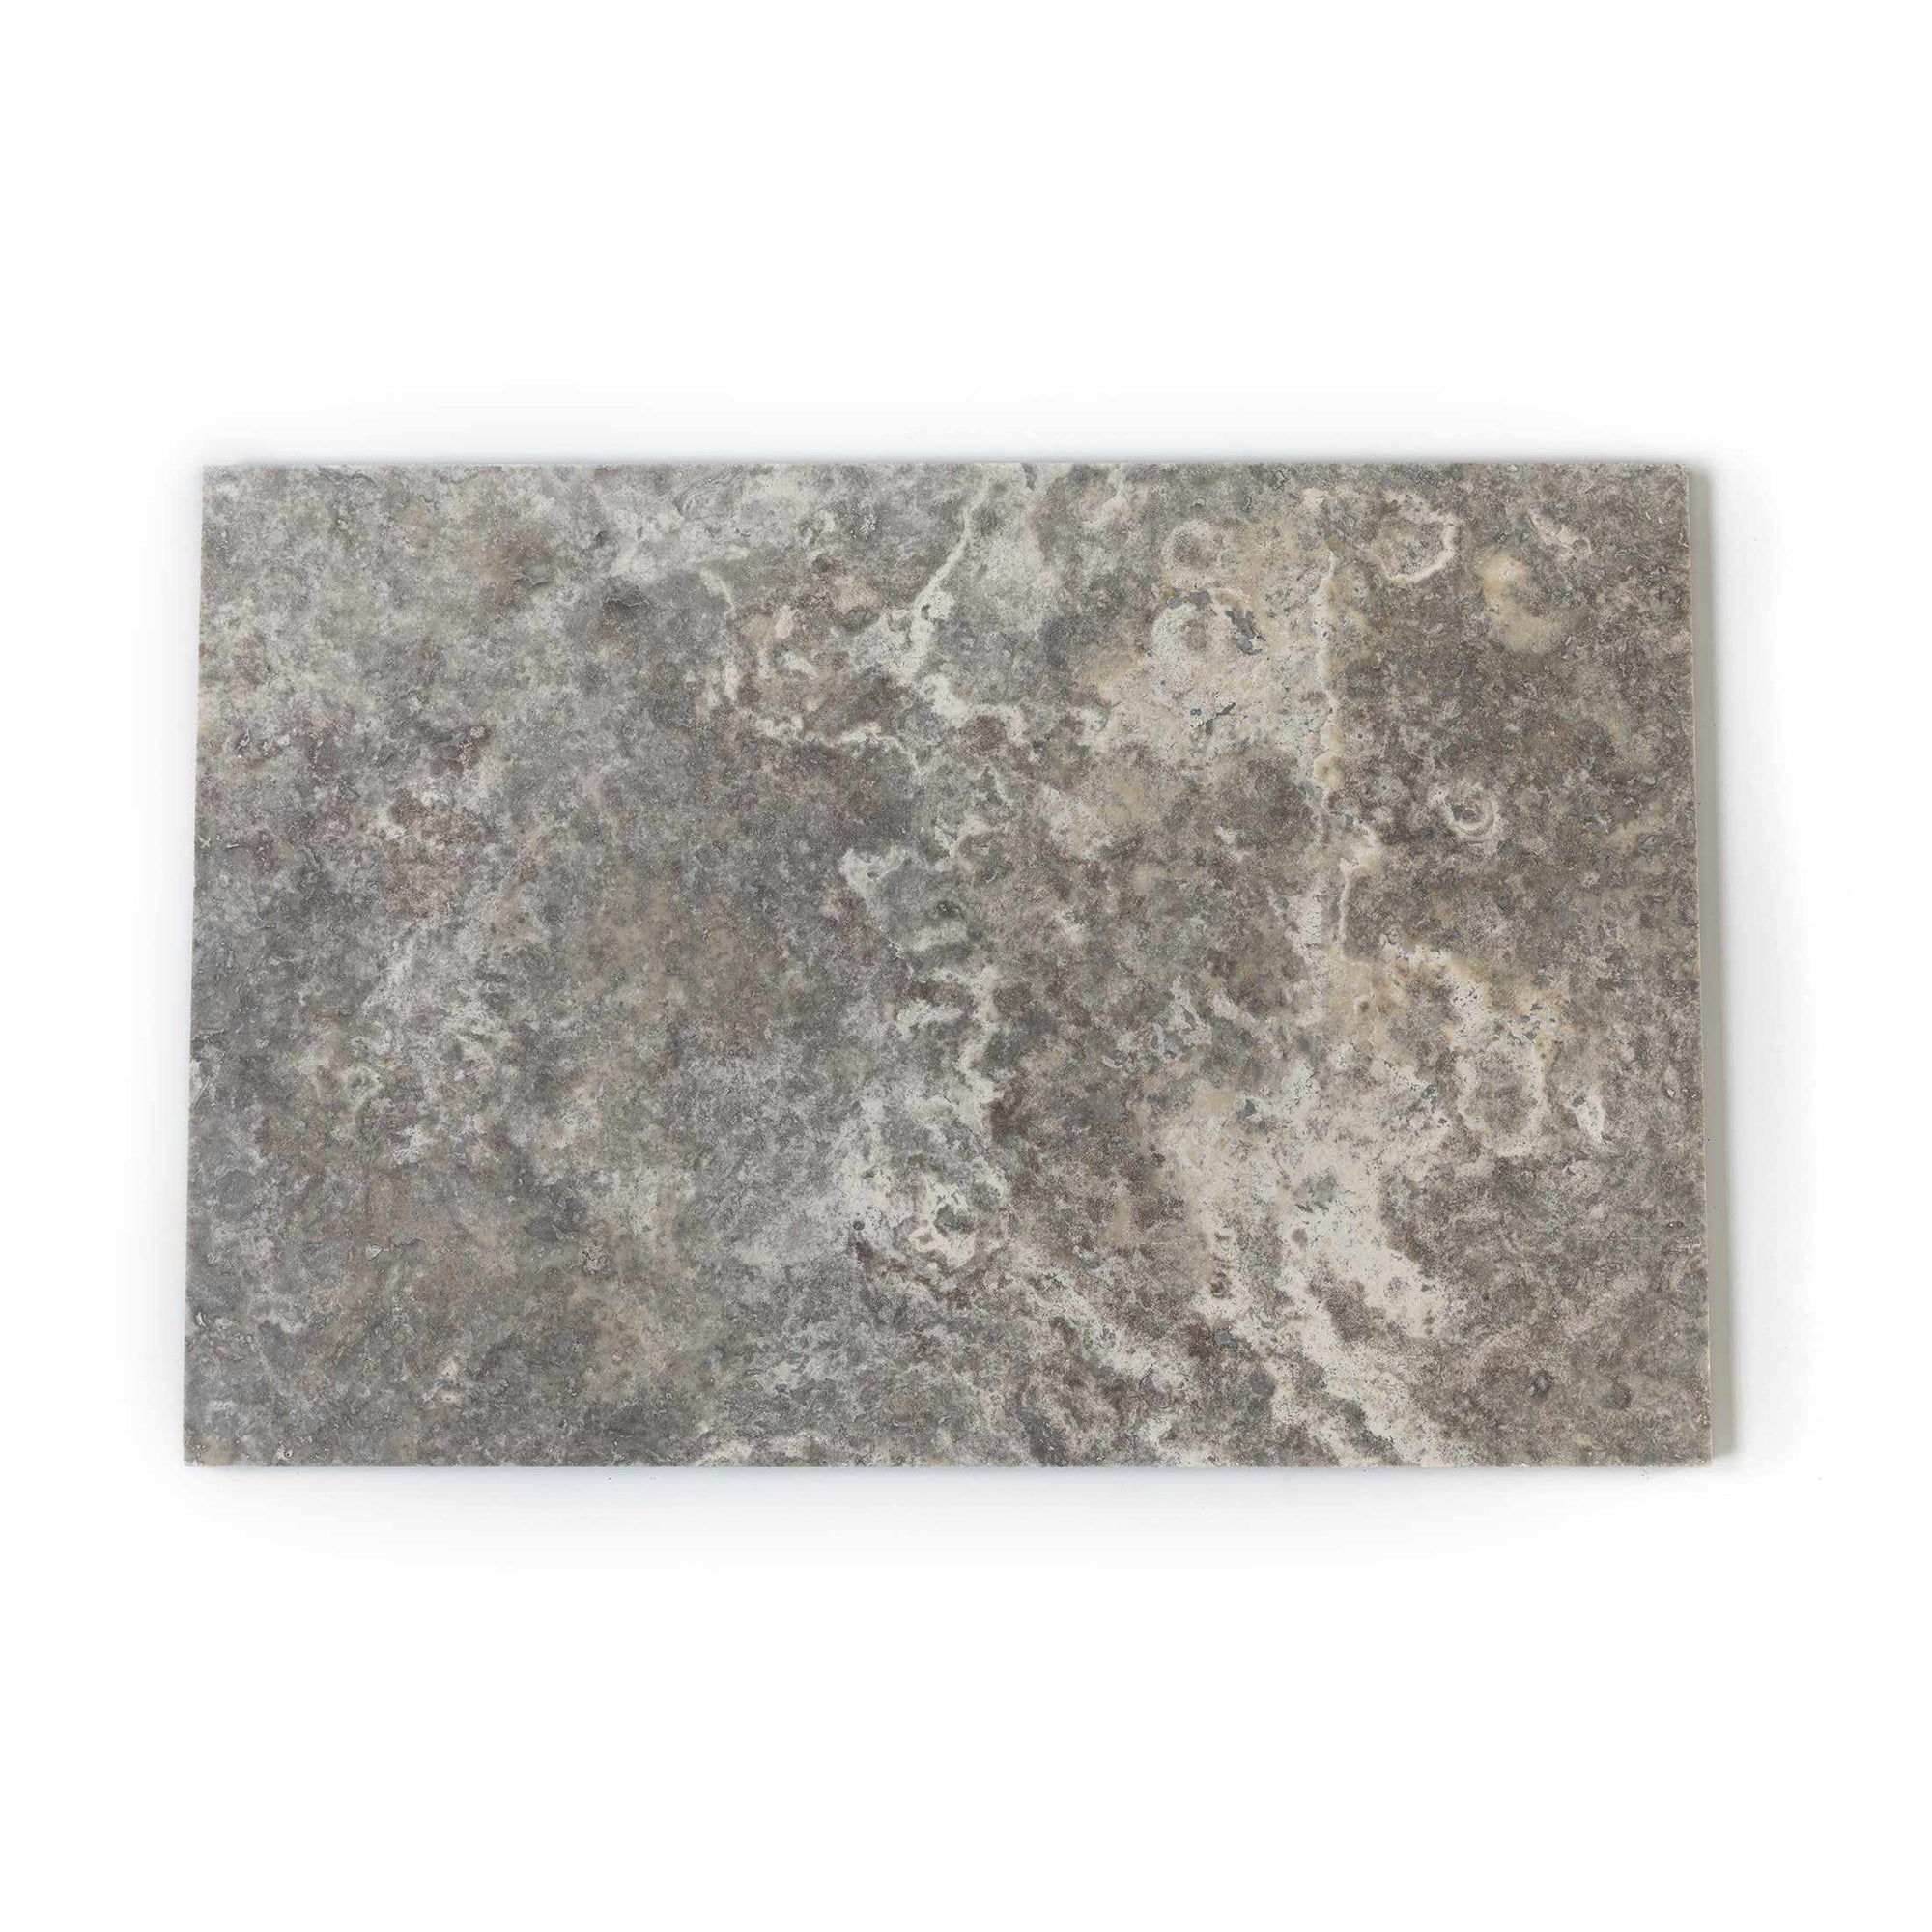 Silver Premium Grade 610x406 mm Travertine Tile